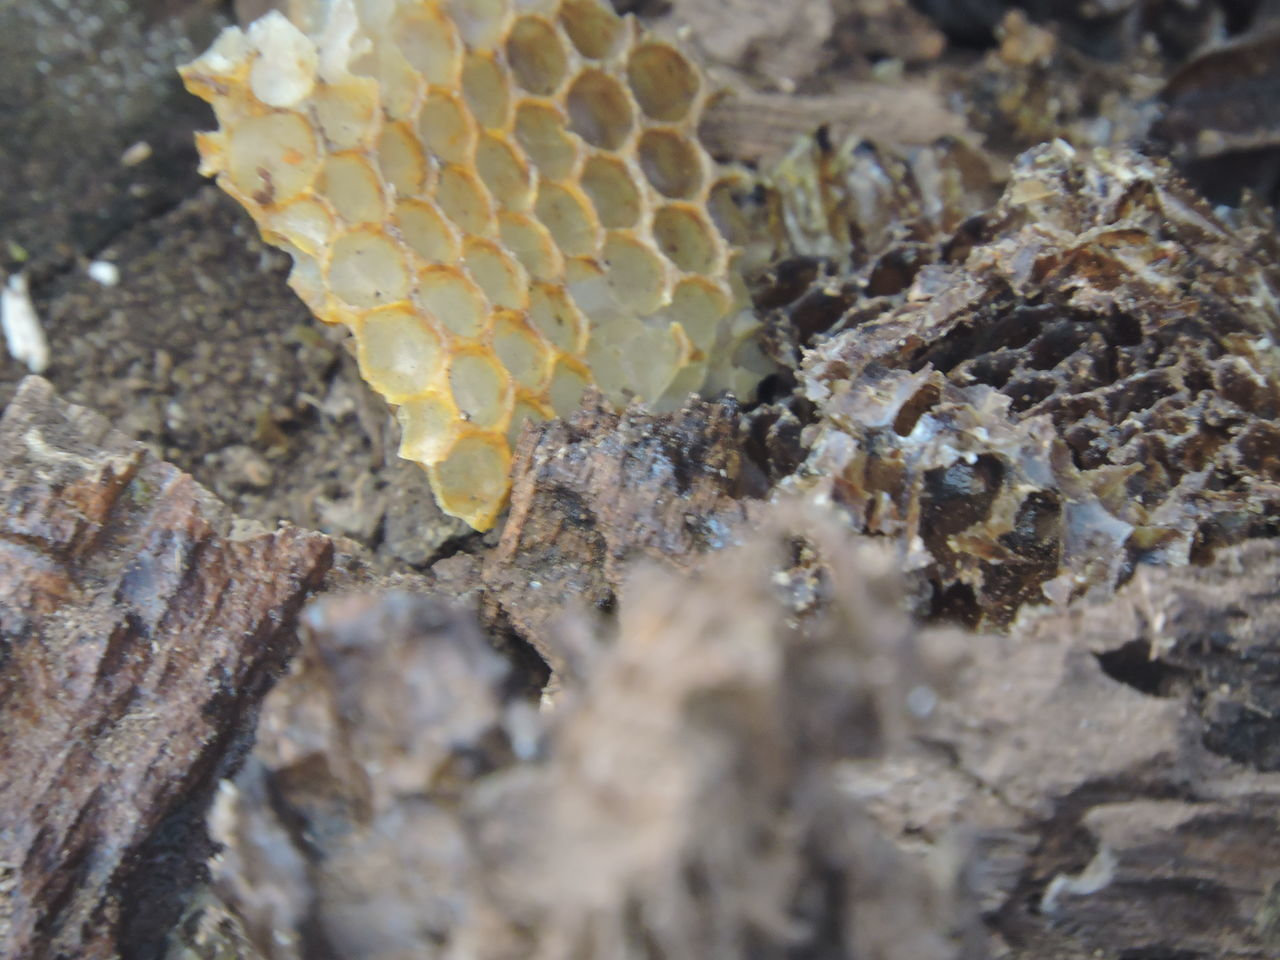 no people, nature, textured, close-up, outdoors, rough, day, rock - object, honeycomb, animals in the wild, fungus, animal themes, beauty in nature, fragility